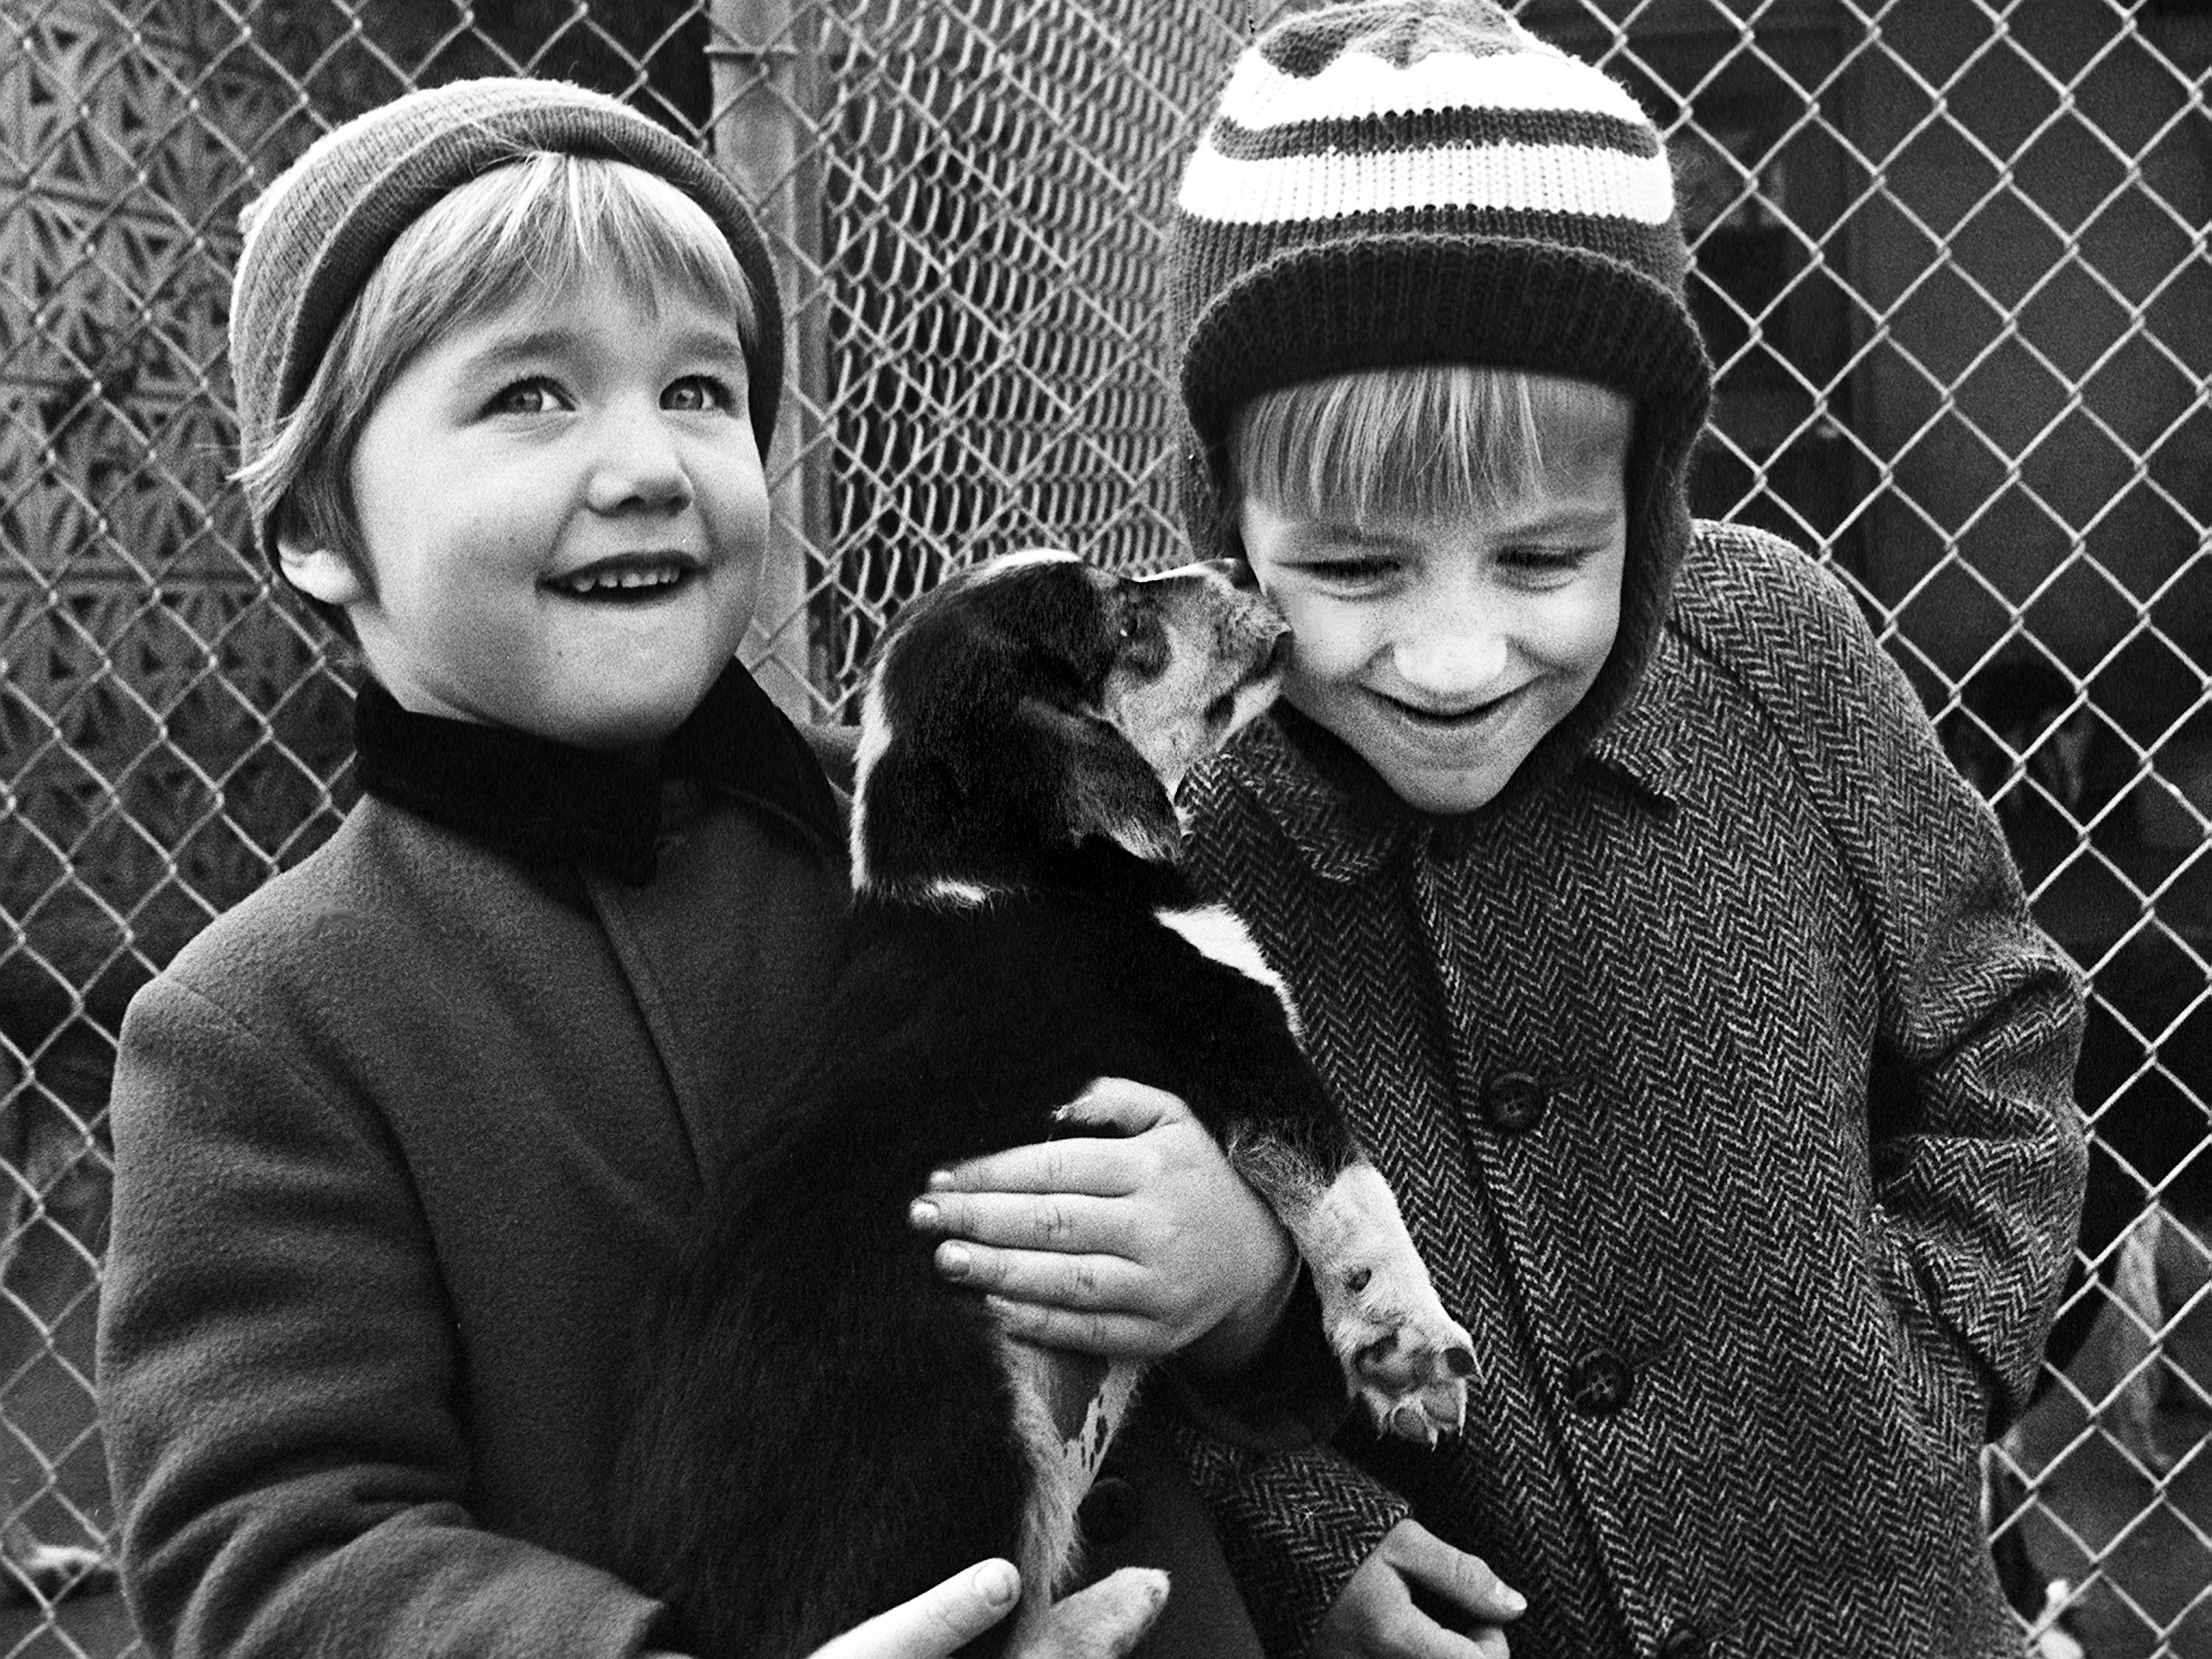 Elaine Kimbrough, left, 4, daughter of Mr. and Mrs. Miller Kimbrough Jr., and Robin Daugherty, 6, son of Mr. and Mrs. Robert Daughtery, do some last-minute Christmas shopping at the Nashville Humane Association's shelter Dec. 23, 1968. Humane officials report a large stock of puppies await the warm hands of friends for the holidays.